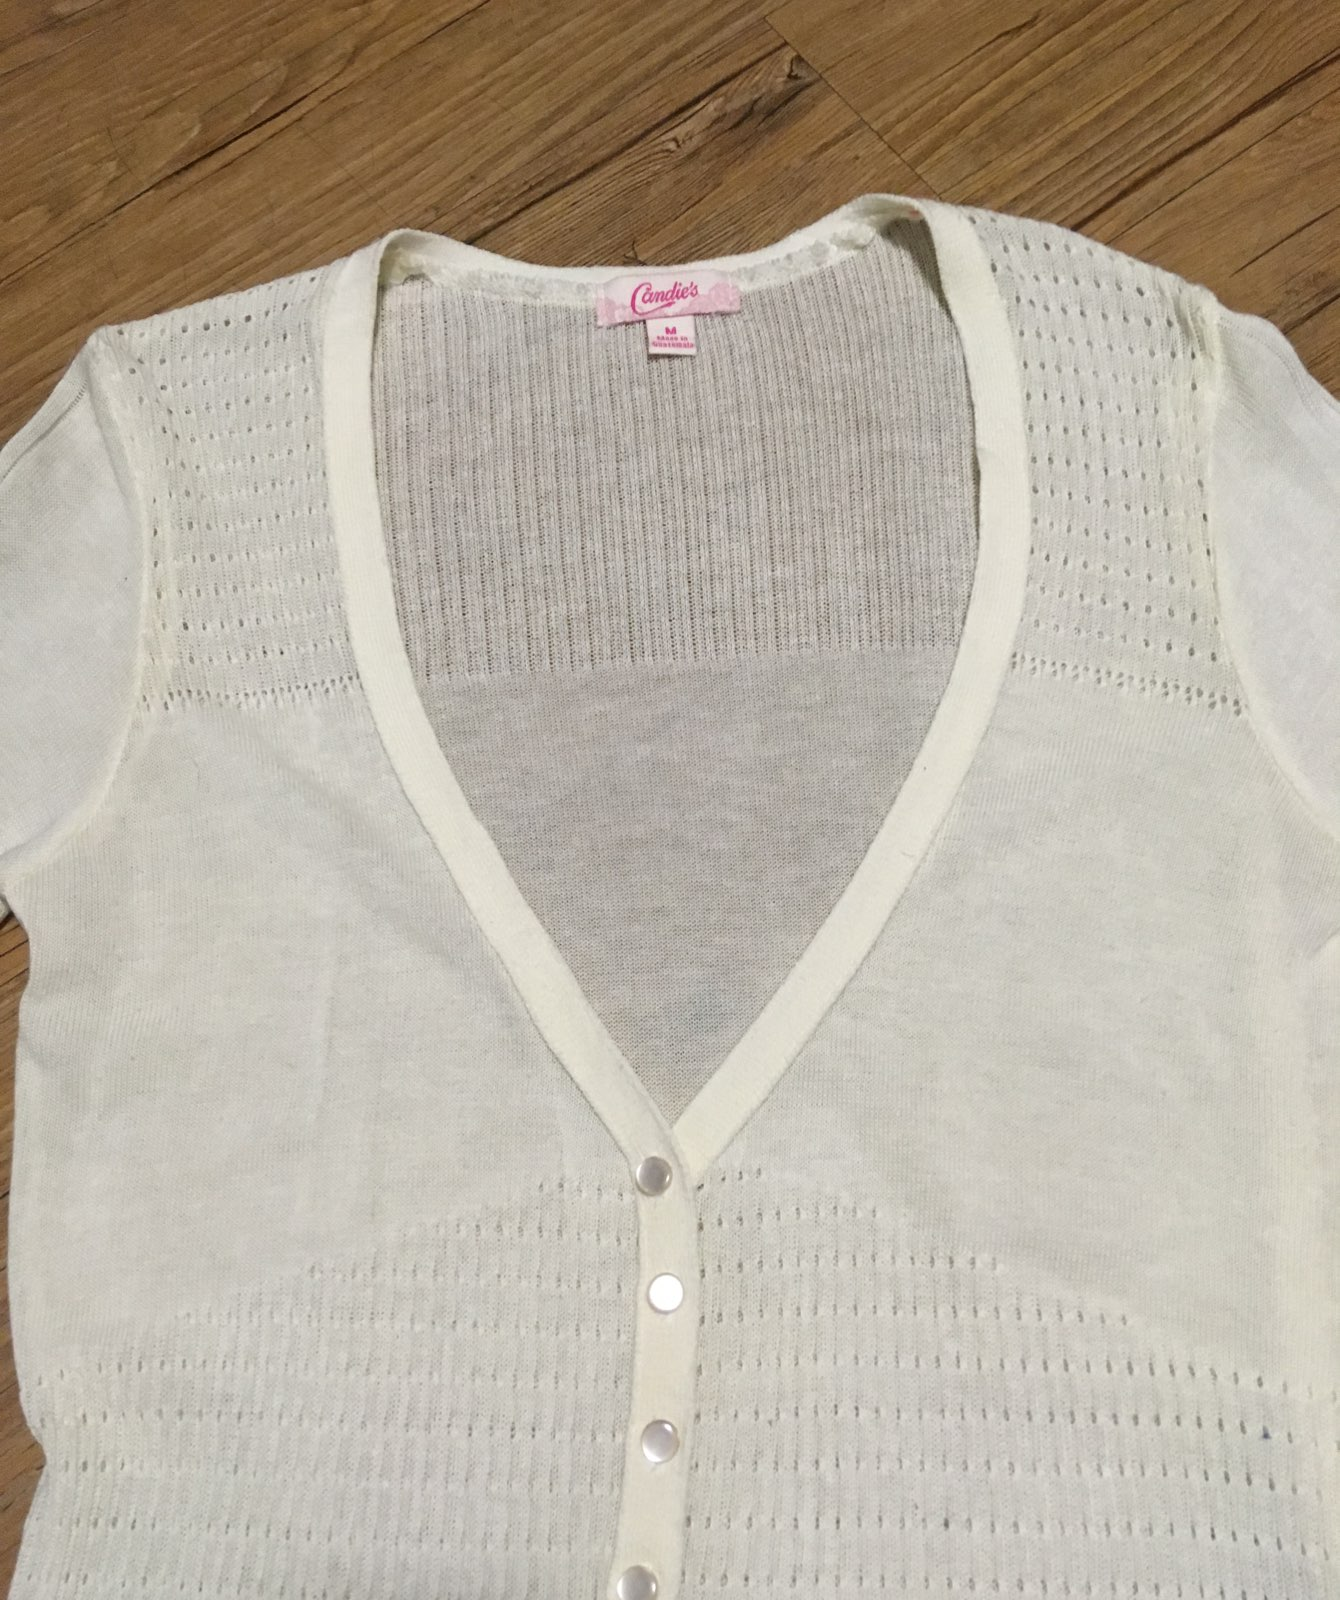 Off White Cardigan Sweater - Mercari: BUY & SELL THINGS YOU LOVE